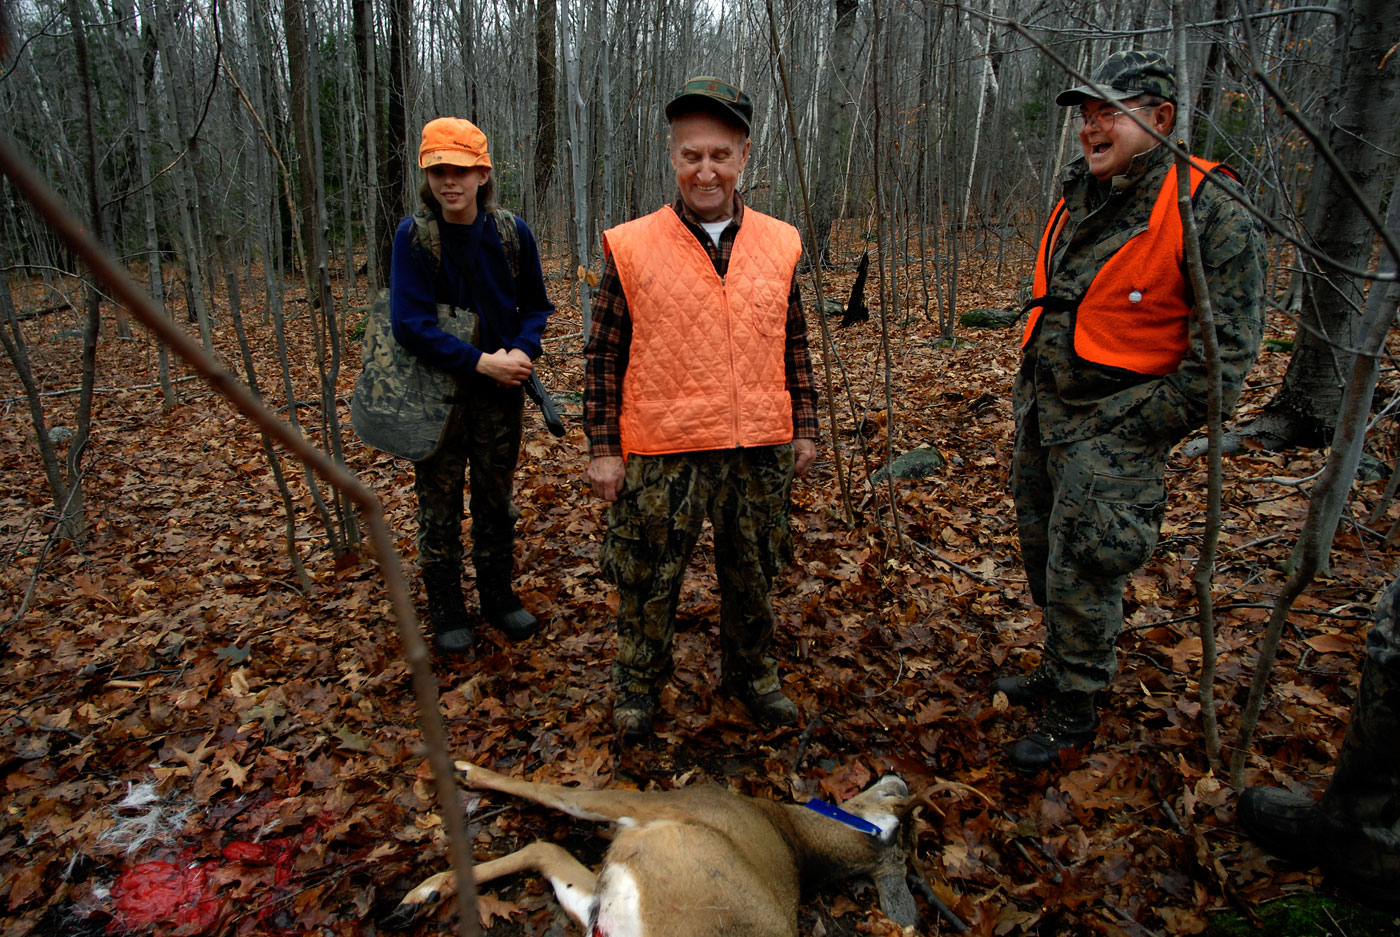 Don Joy, left, 68, of East Hartland, reacts with excitement for Bob Vezina, 77, of Hartford, after he shot a deer on the first day of the season. At left is Beth Irwin, who was hunting with her father, Tim, nearby the two men. Joy and Vezina have hunted together for 40 years. {quote}I was as happy as if I had shot it myself,{quote} said Joy, who scouted out the stand for his friend Vezina. {quote}We don't really need to get a deer while we're out - if we get one it's great, but it's more just being out there and enjoying nature.{quote}